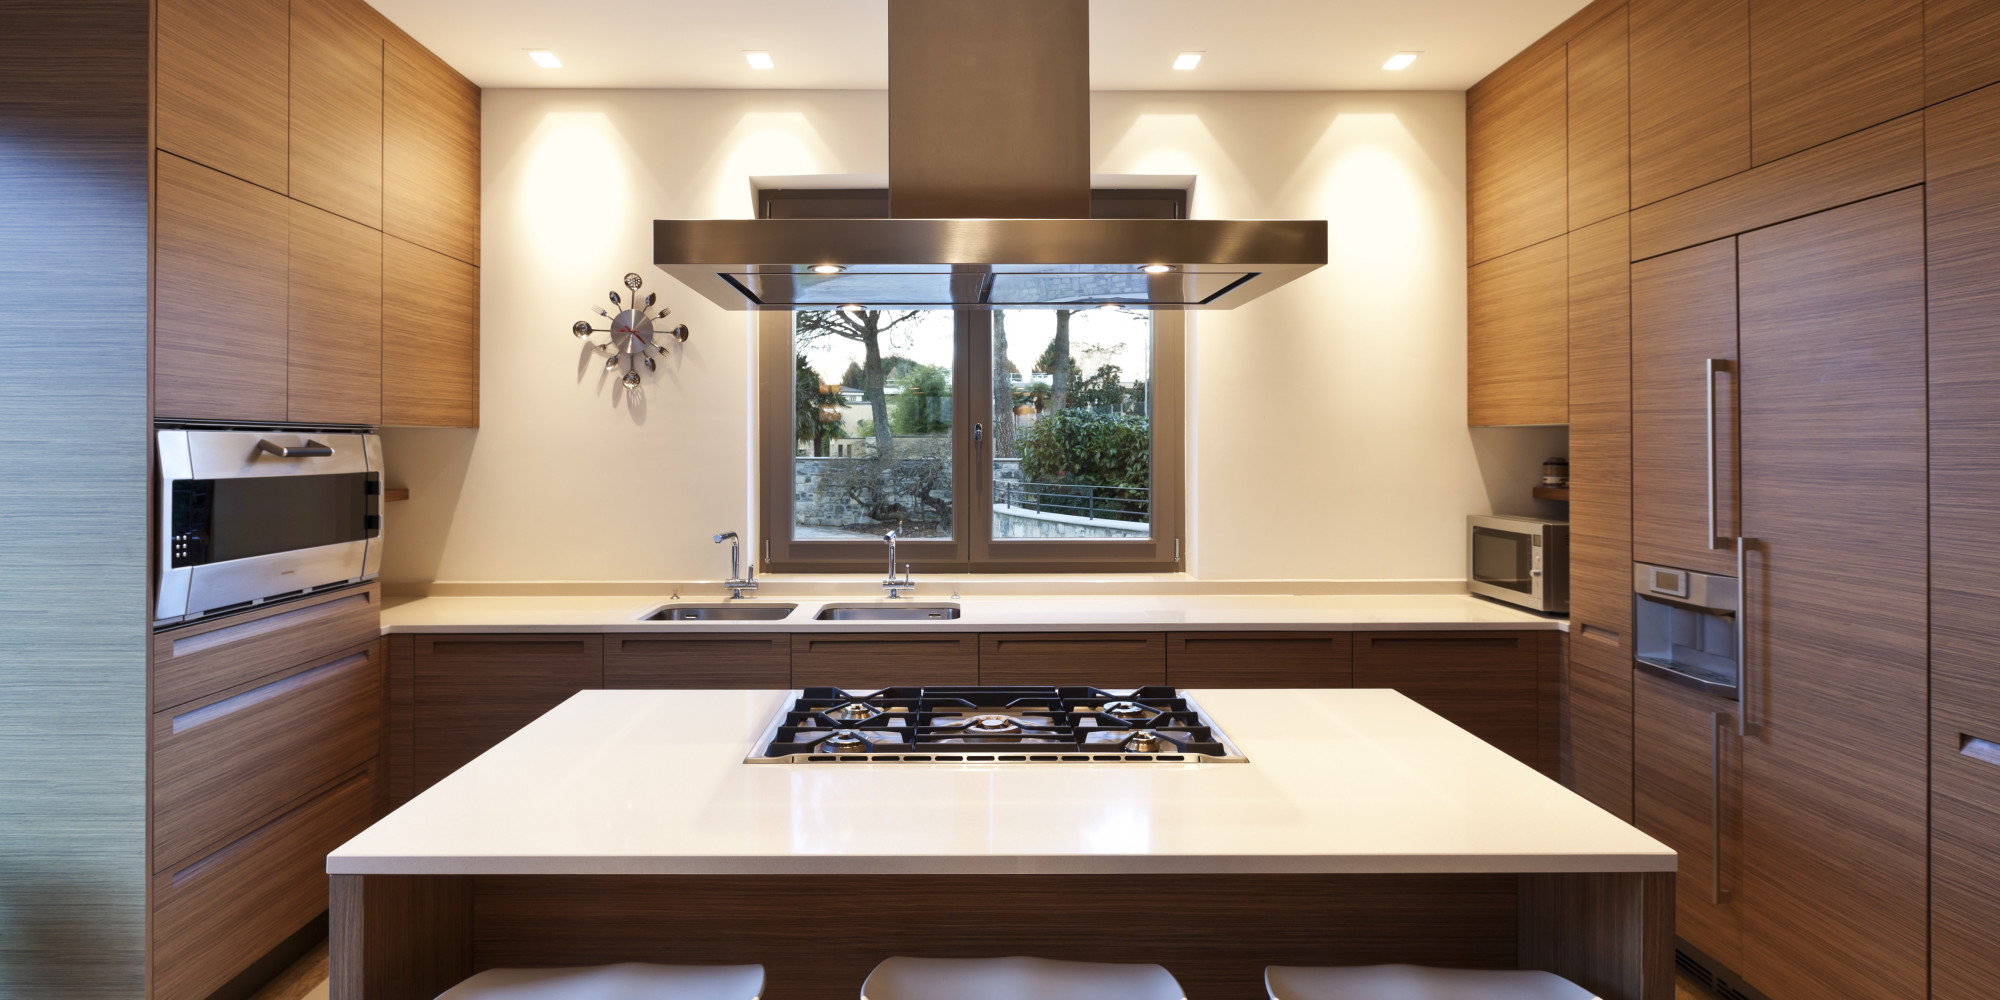 The Best Kitchens In America Aren T Necessarily Where You